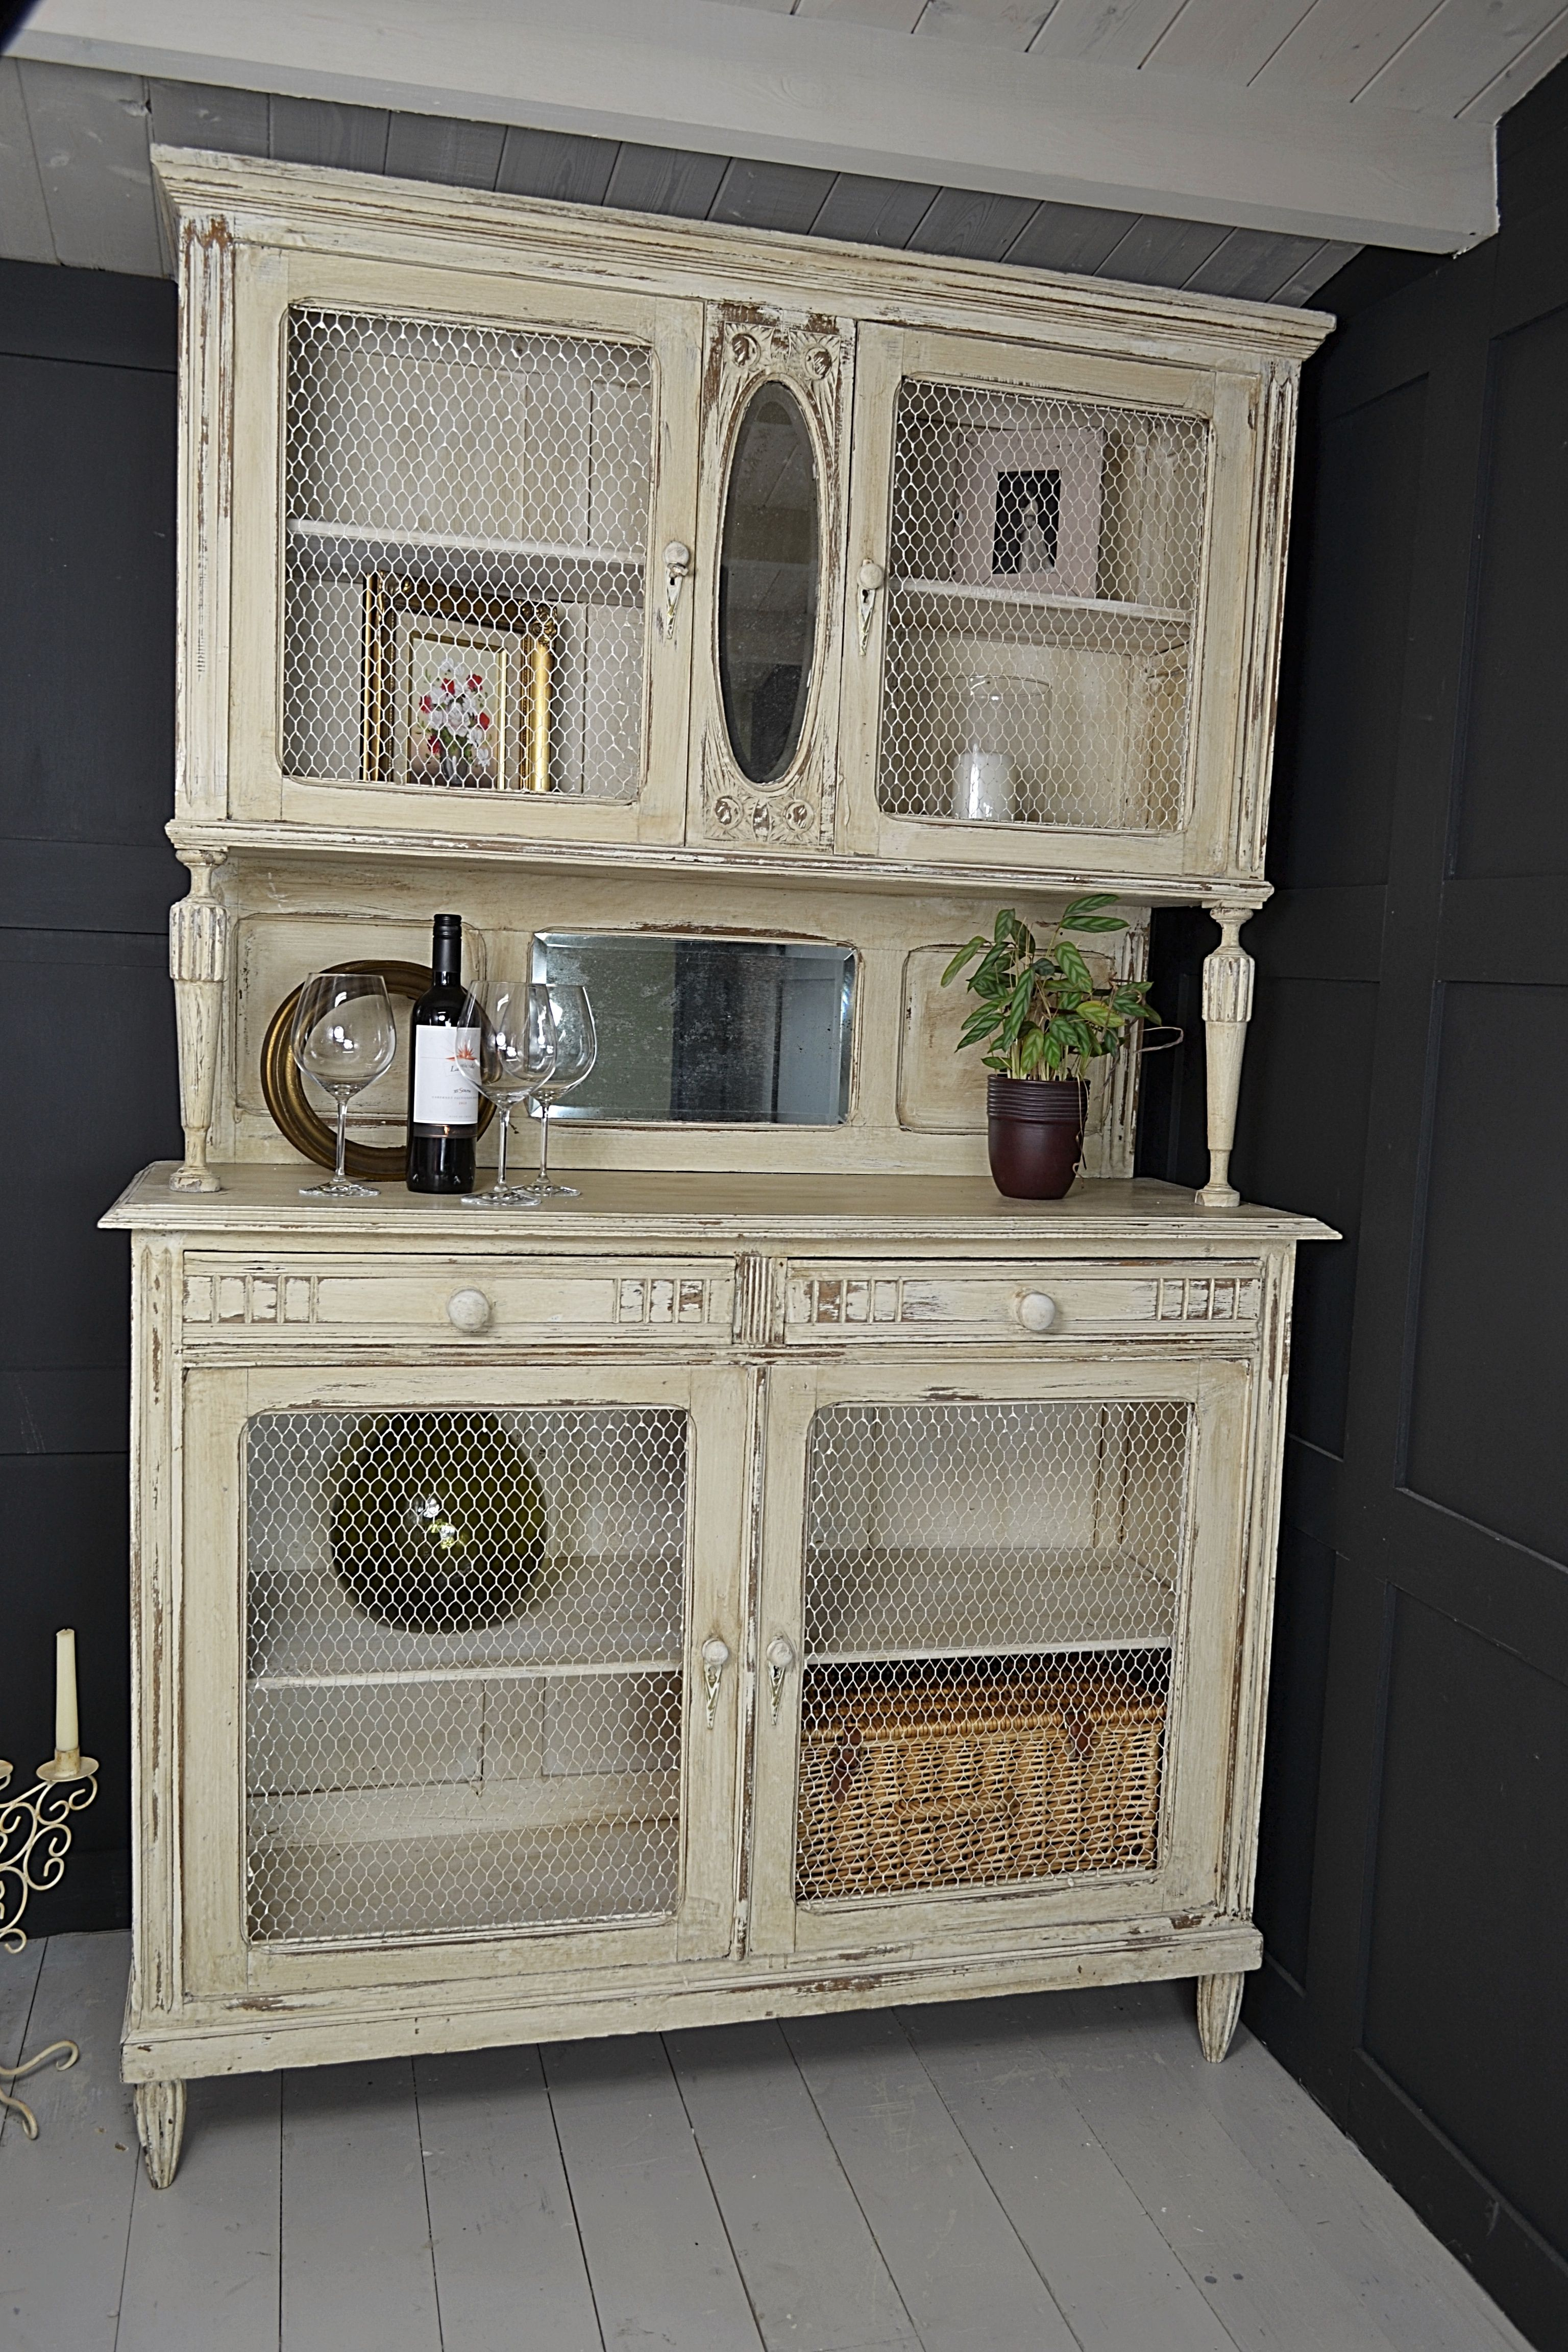 This Original French Oak Dresser Could Be Used In A Kitchen Or